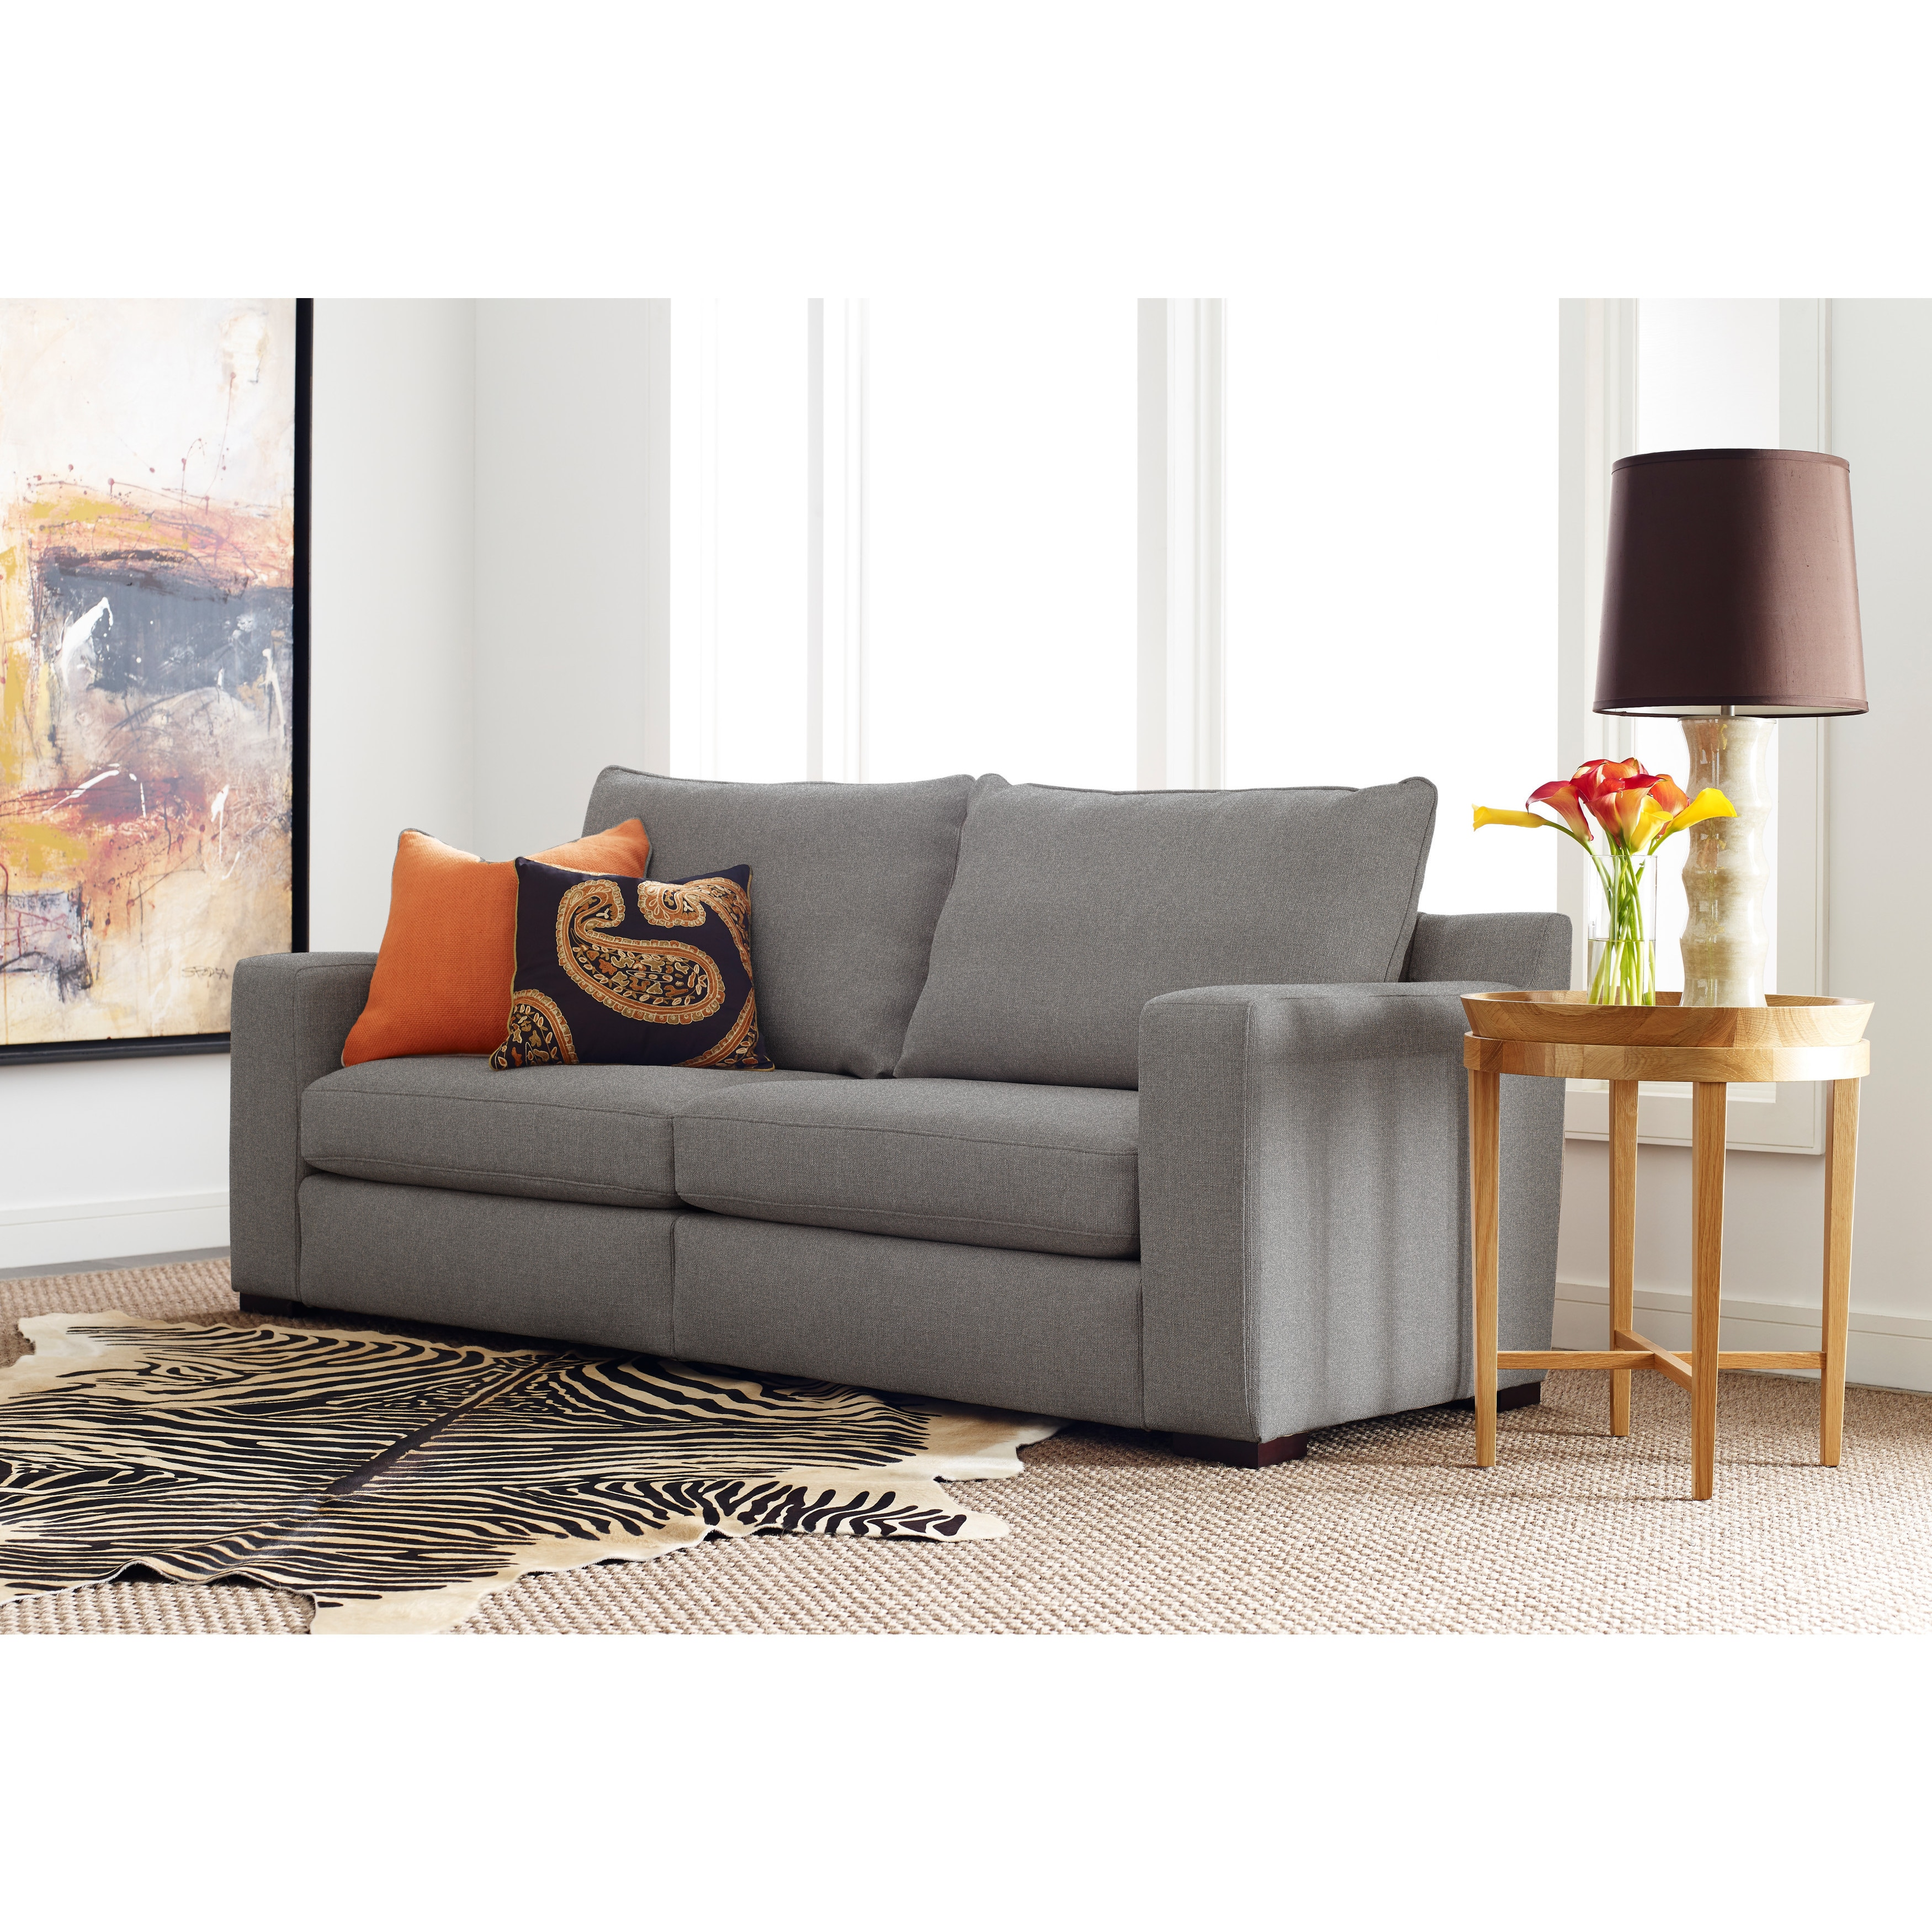 my sofa living room livings products upholstery loveseat viewpoint by place furniture tan serta and stationary